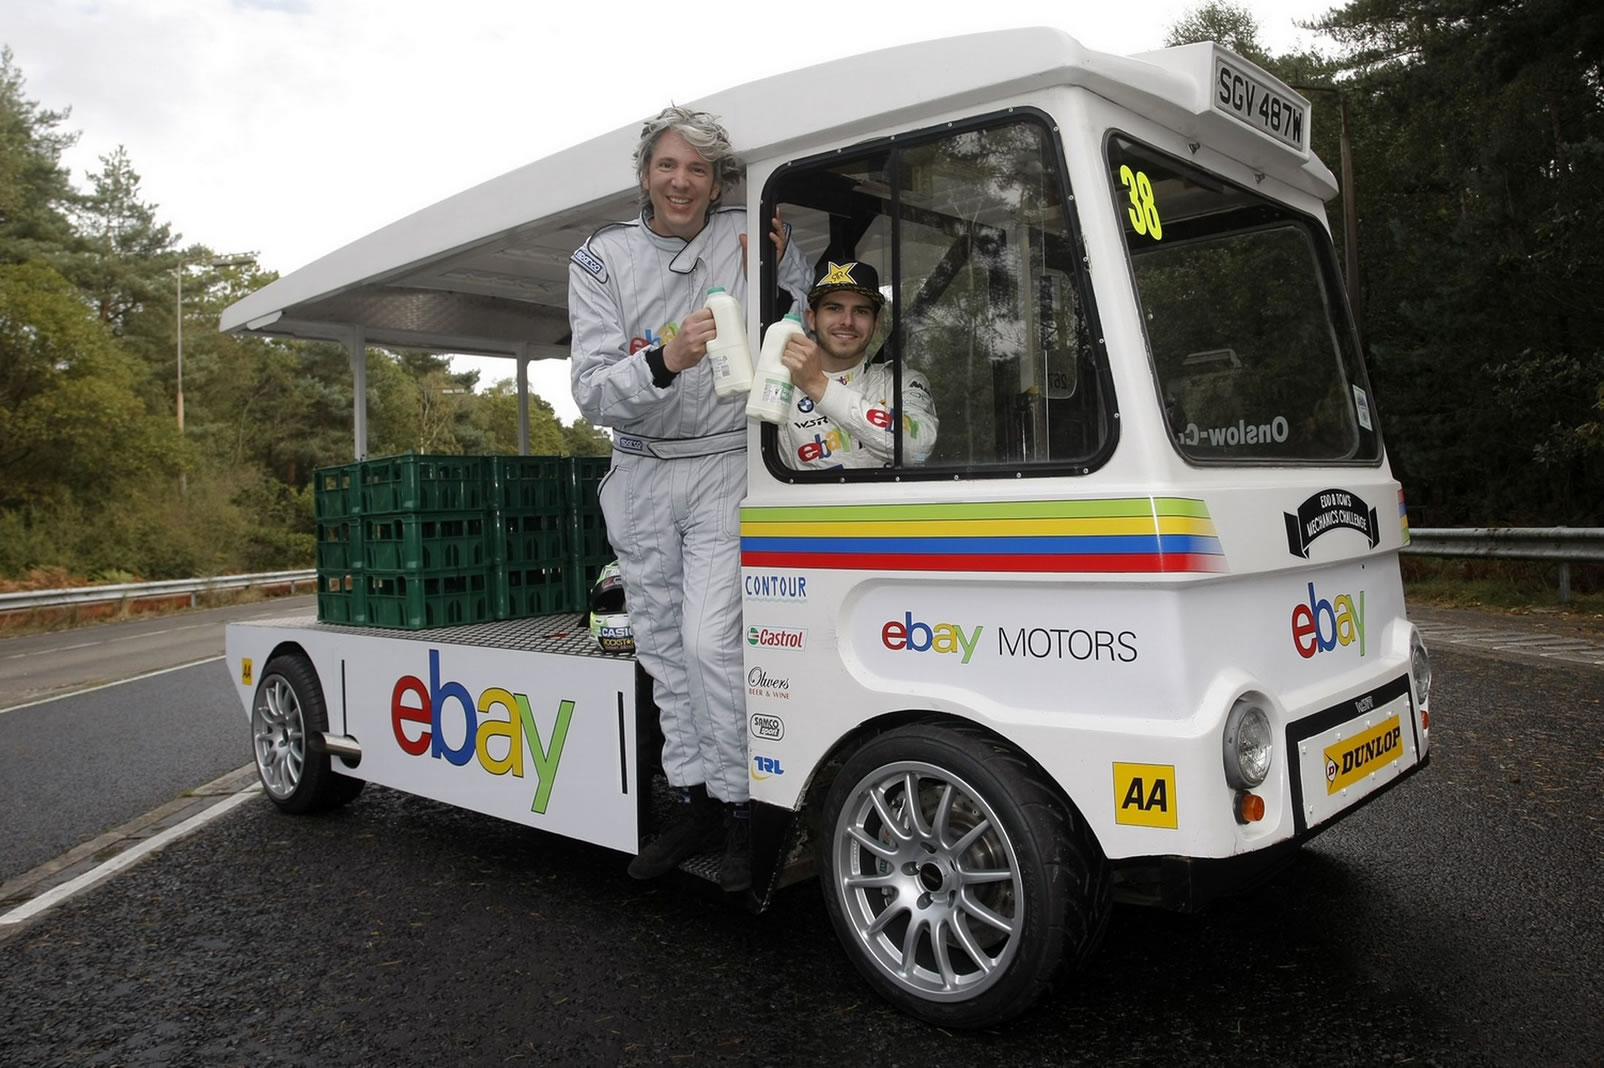 Fastest Milk Float Edd China And Tom Onlsow Cole Break Guinness World Record Video